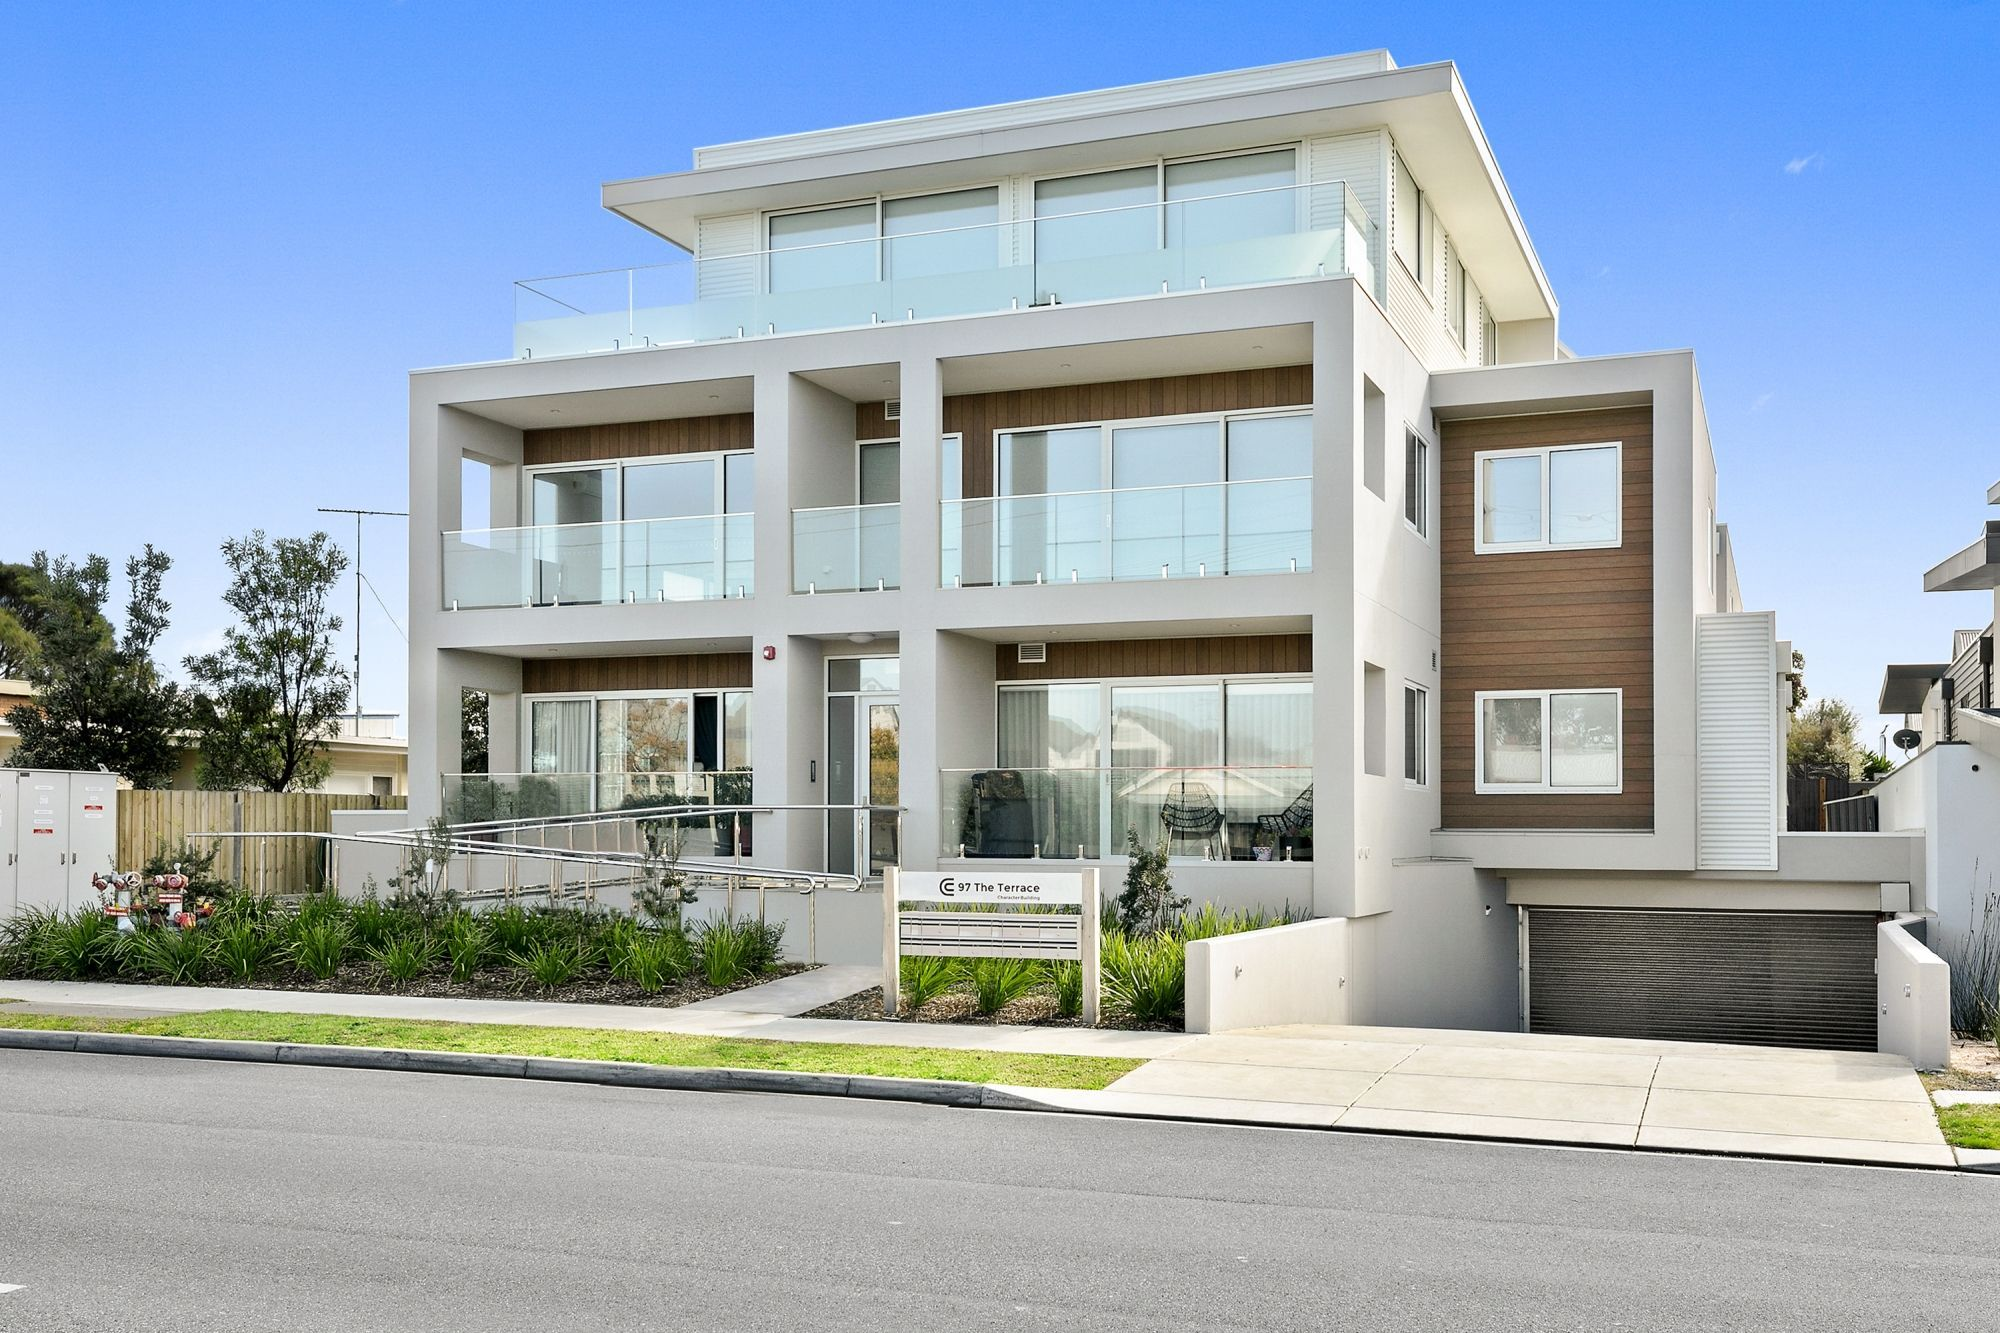 Apartment 5/97 The Terrace, Ocean Grove VIC 3226